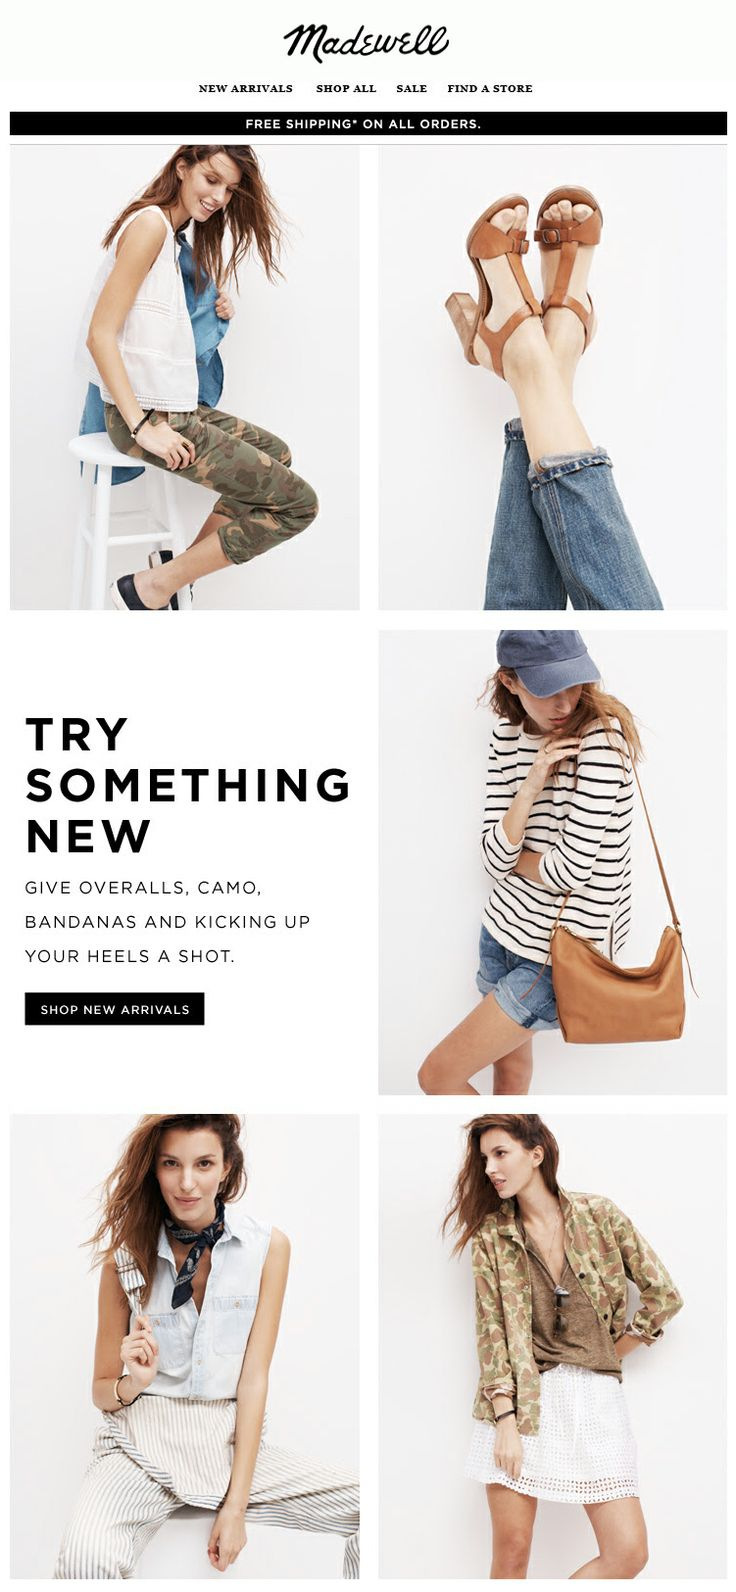 Madewell : New Arrivals